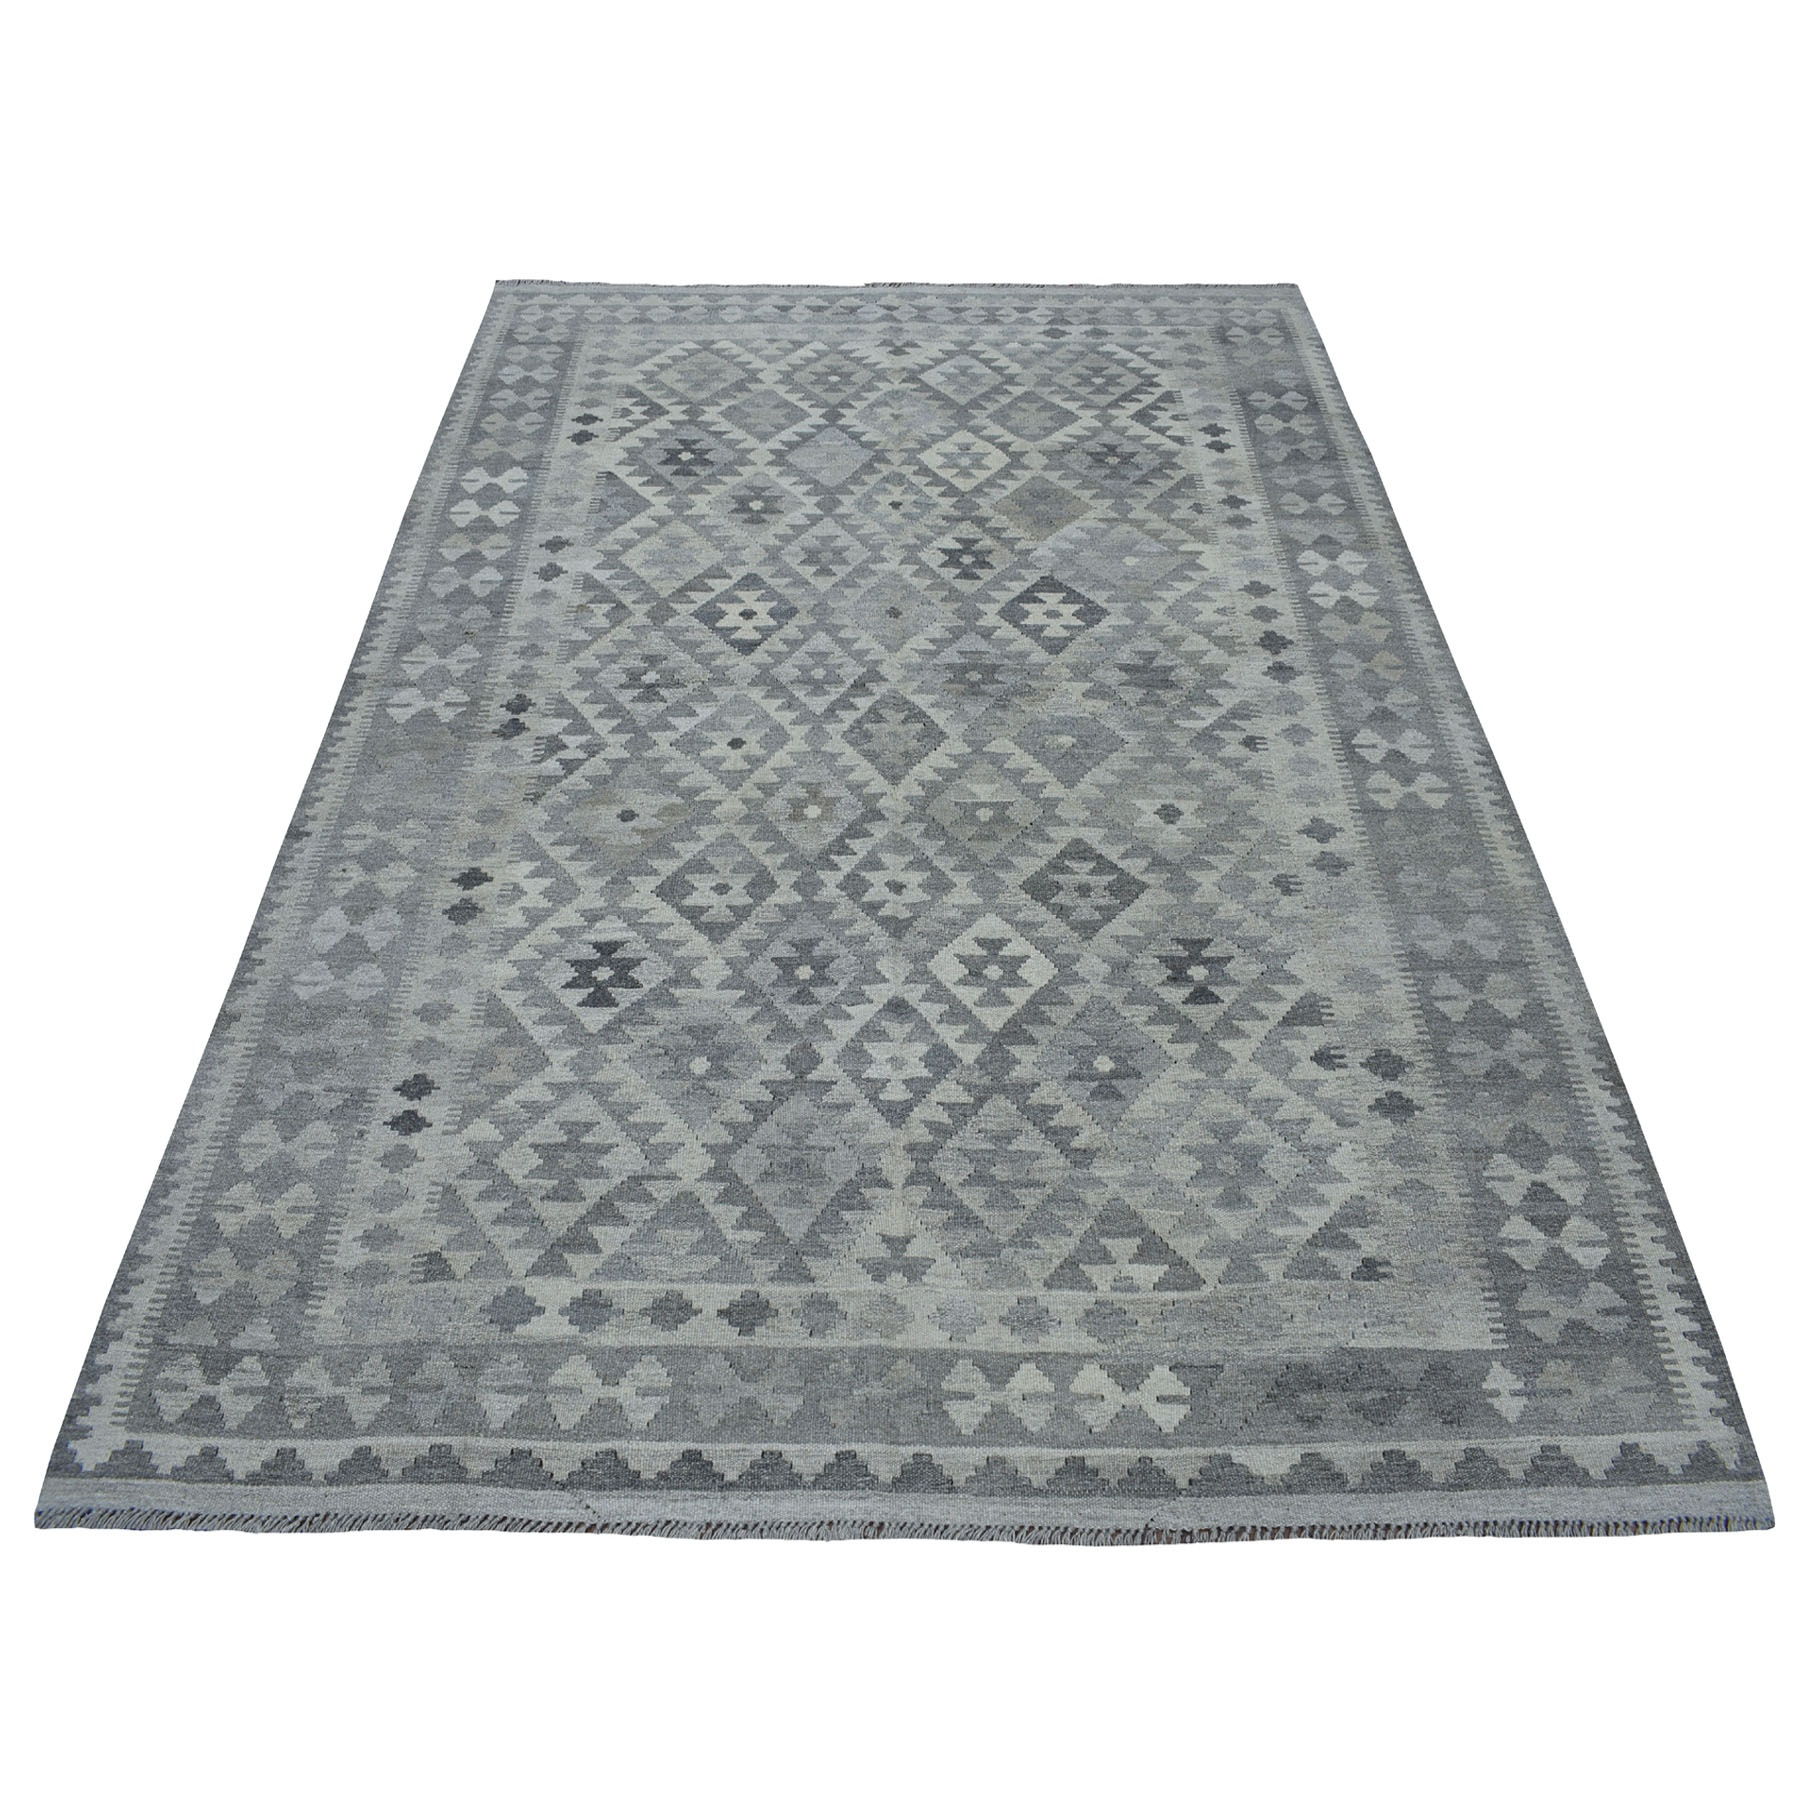 """5'6""""X7'10"""" Undyed Natural Wool Afghan Kilim Reversible Hand Woven Oriental Rug moaec0d6"""